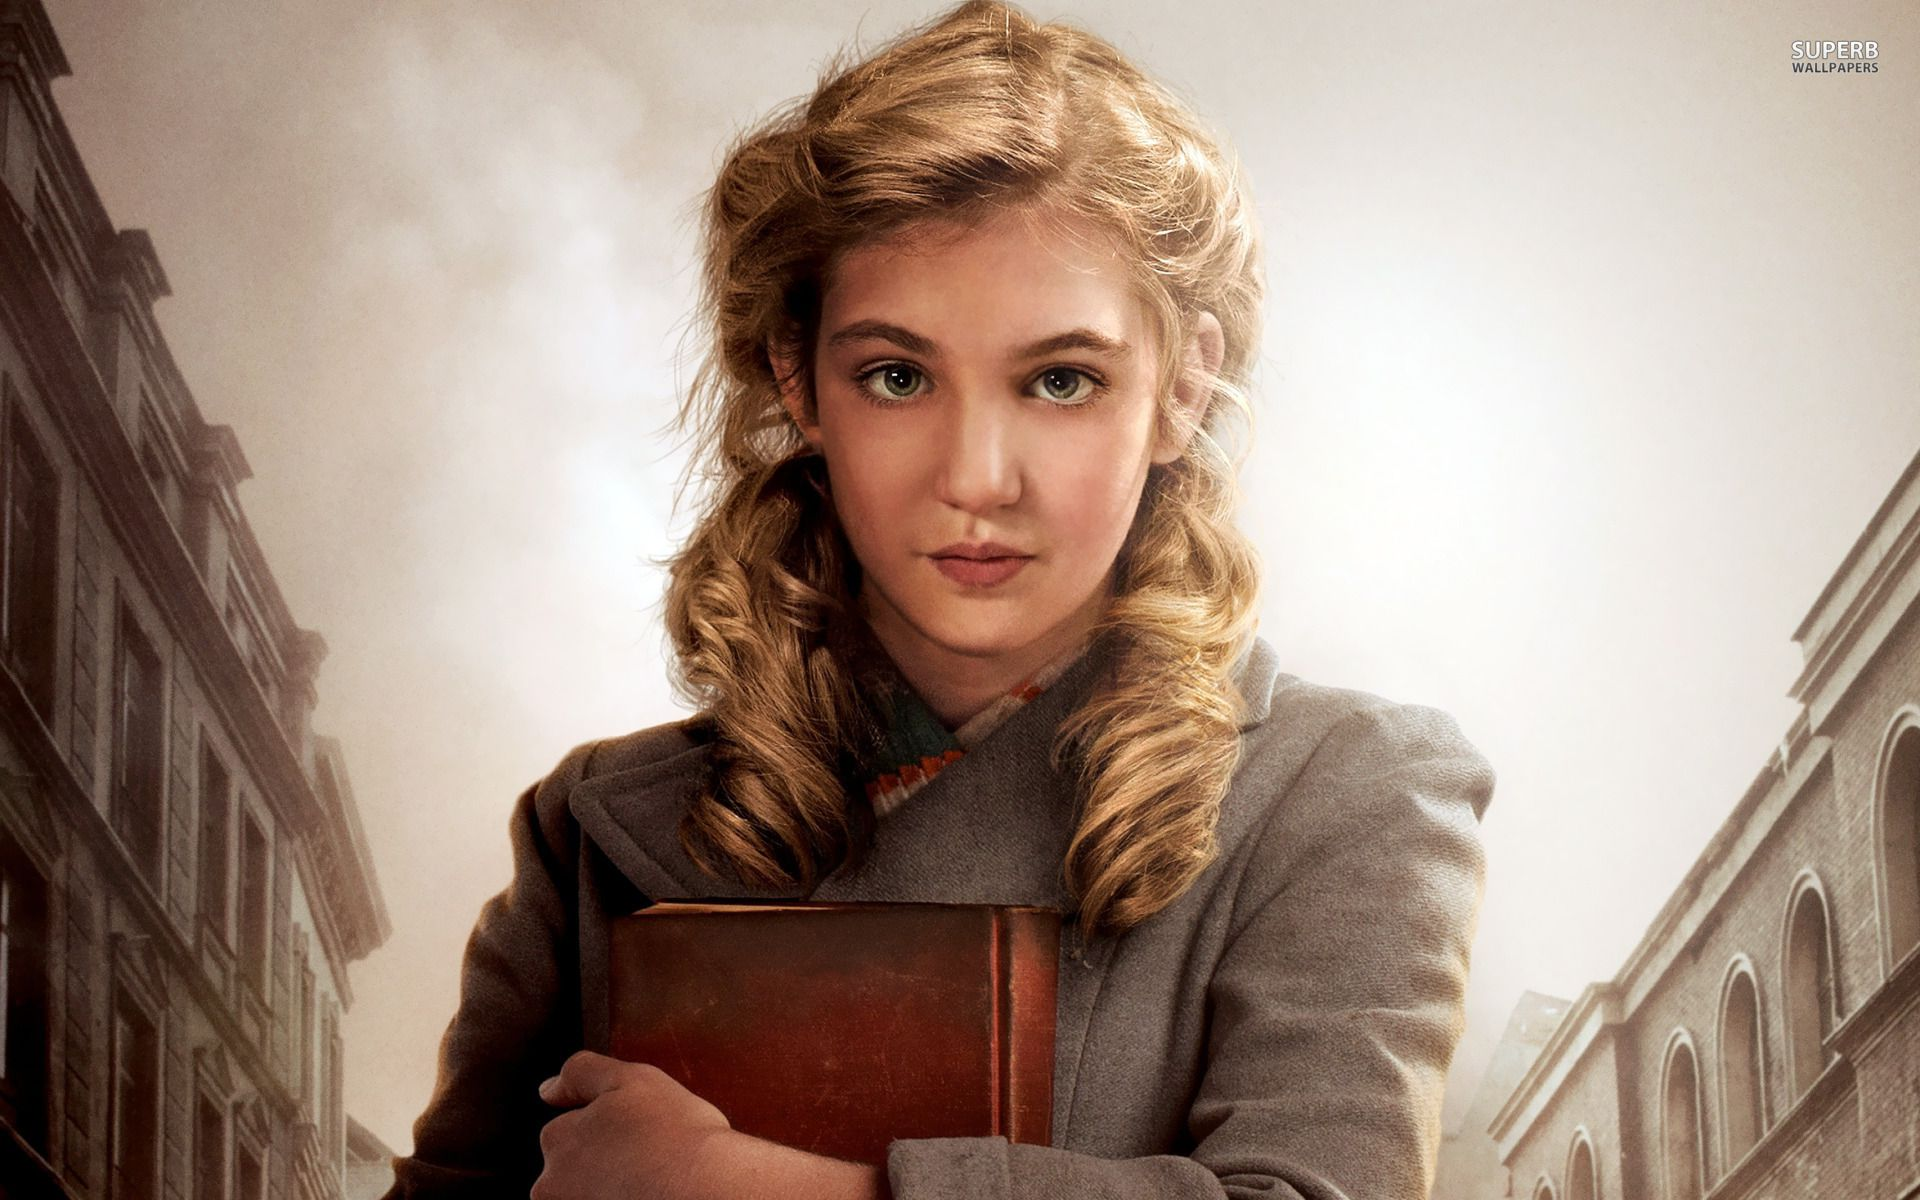 the book thief sophie nelisse google search hair  the book thief sophie nelisse google search